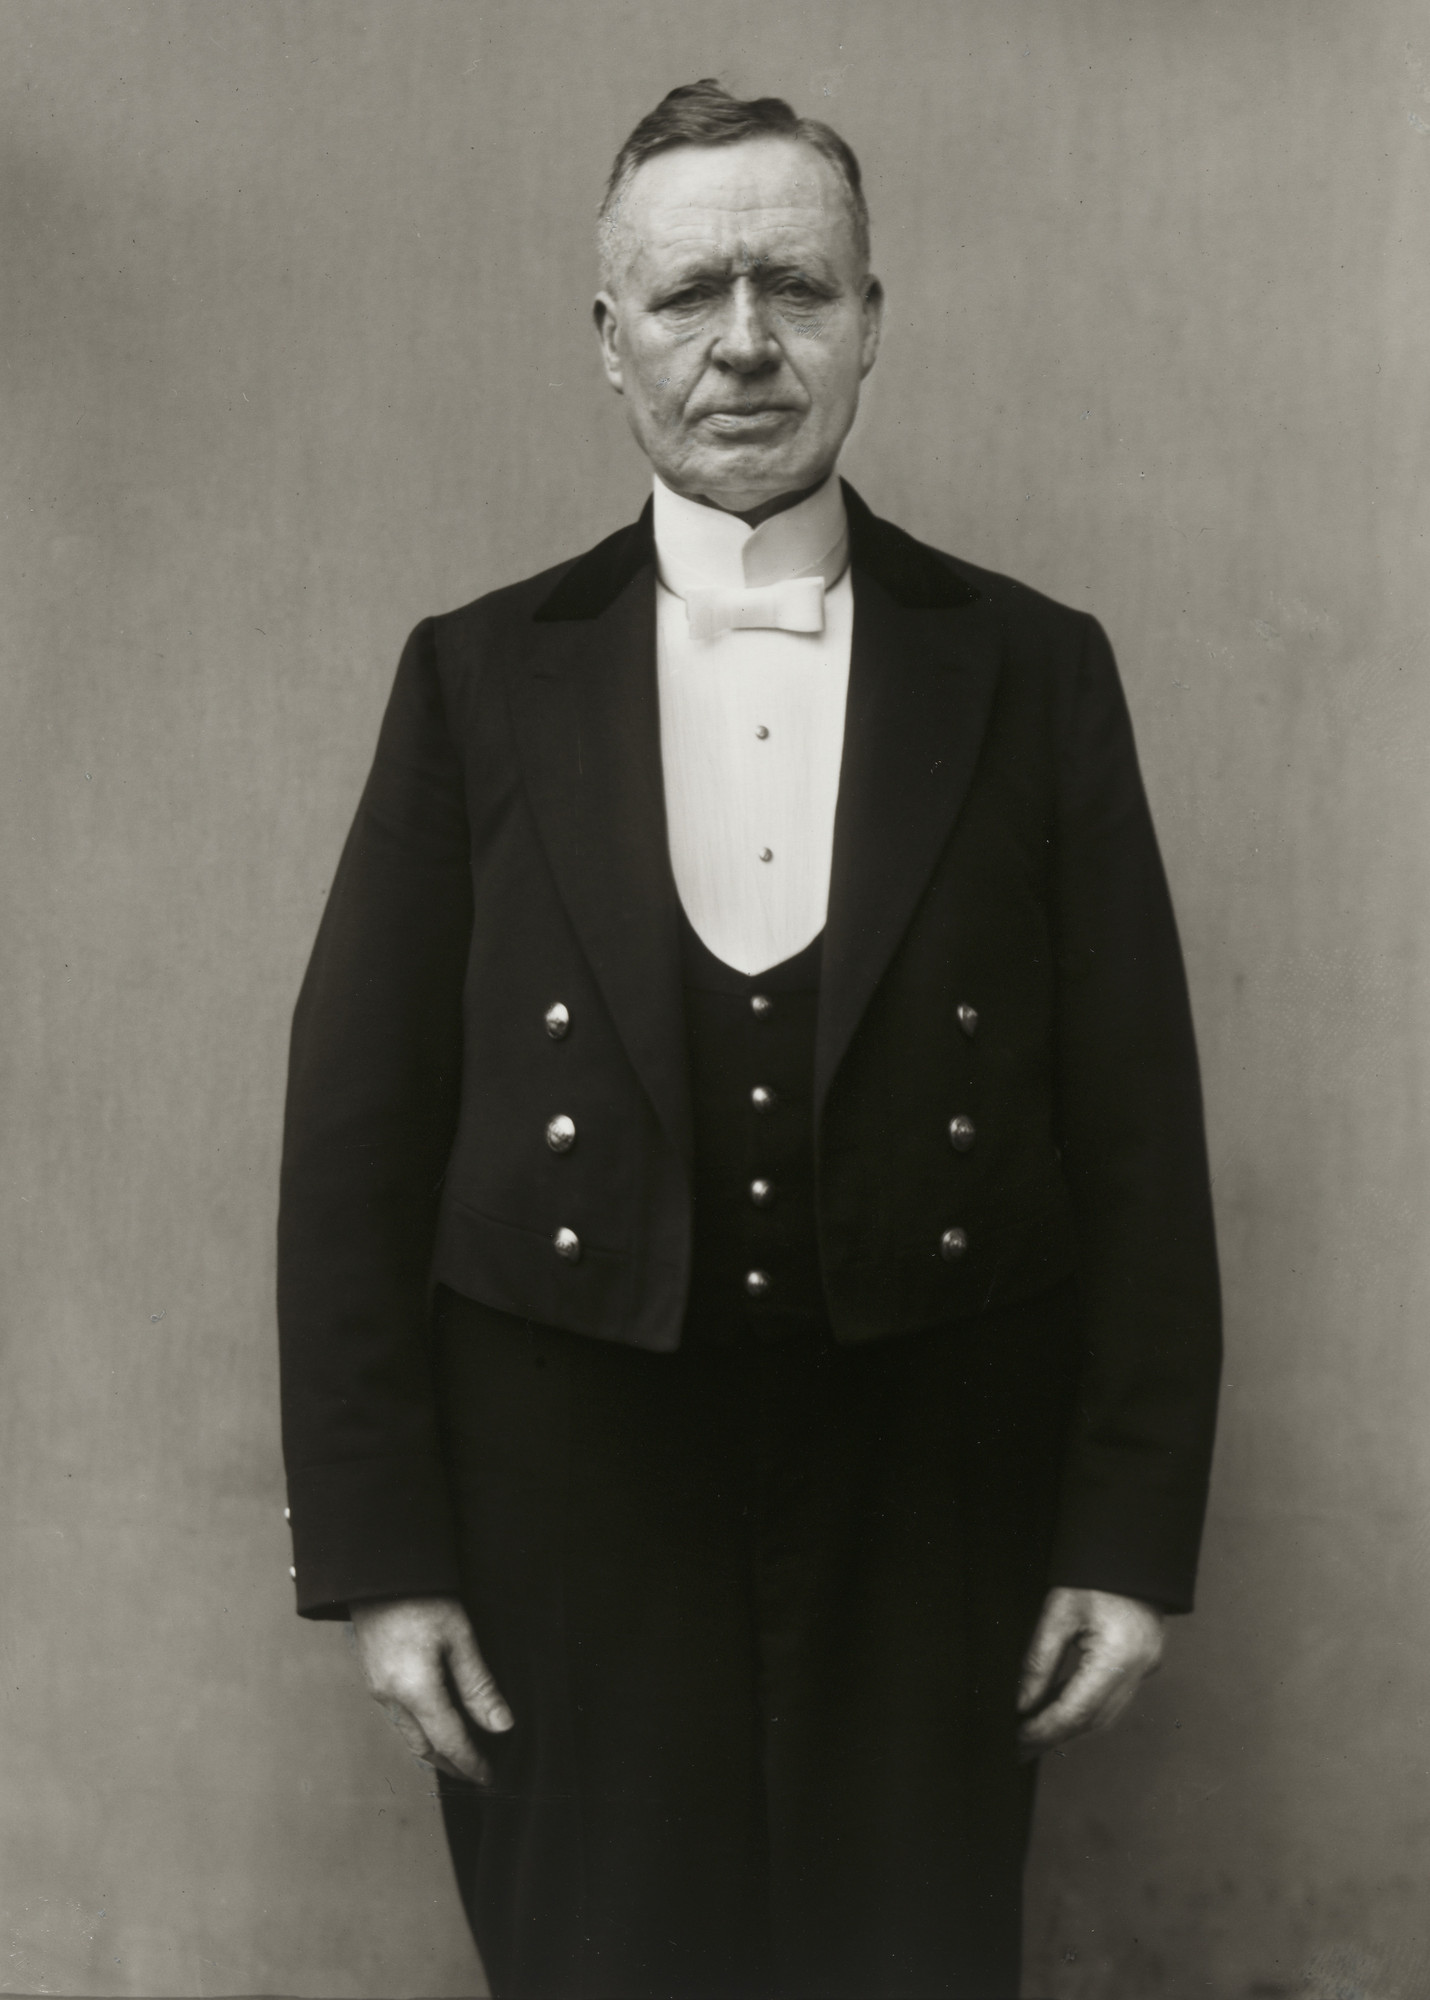 August Sander. Duke's Manservant. c. 1930